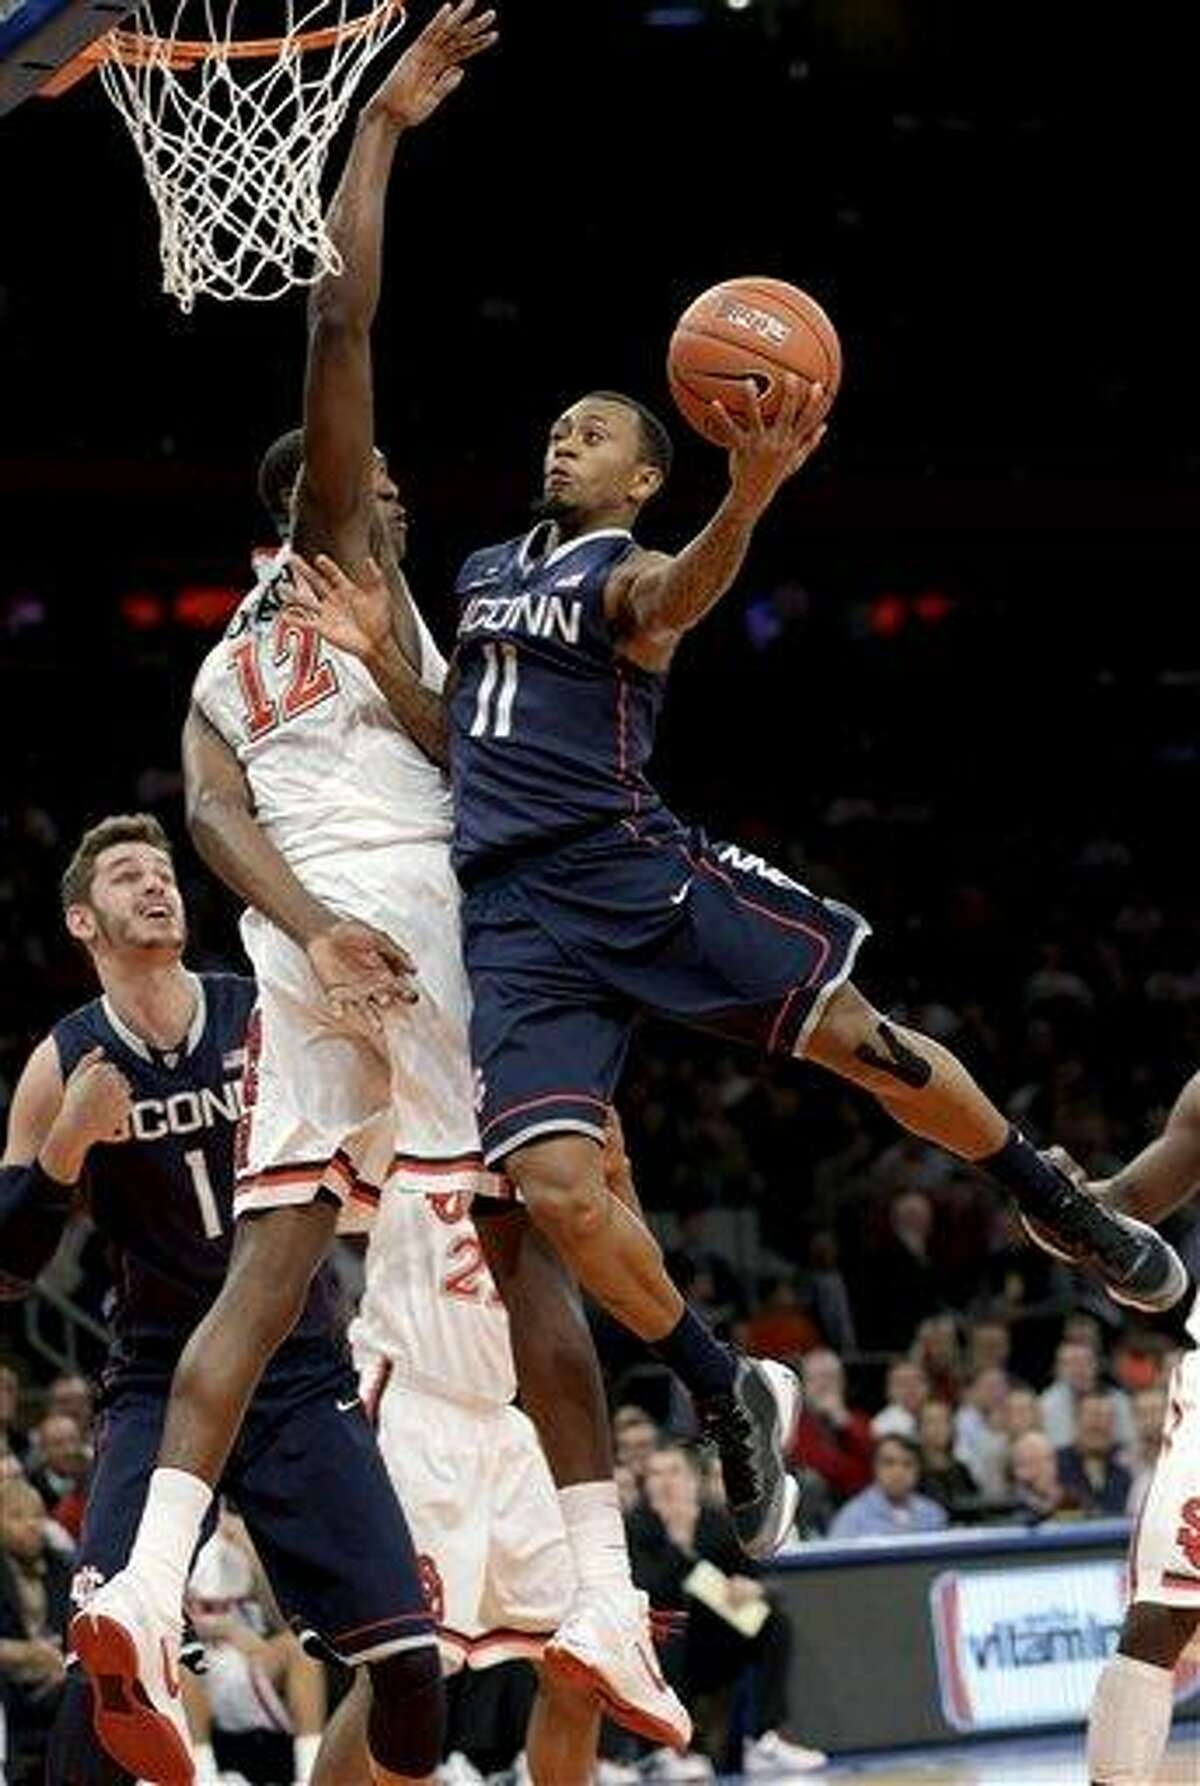 St. John's Chris Obekpa (12) defends as Connecticut guard Ryan Boatright (11) shoots a layup during the first half of their NCAA college basketball game, Wednesday, Feb. 6, 2013, at Madison Square Garden in New York. (AP Photo/Kathy Willens)